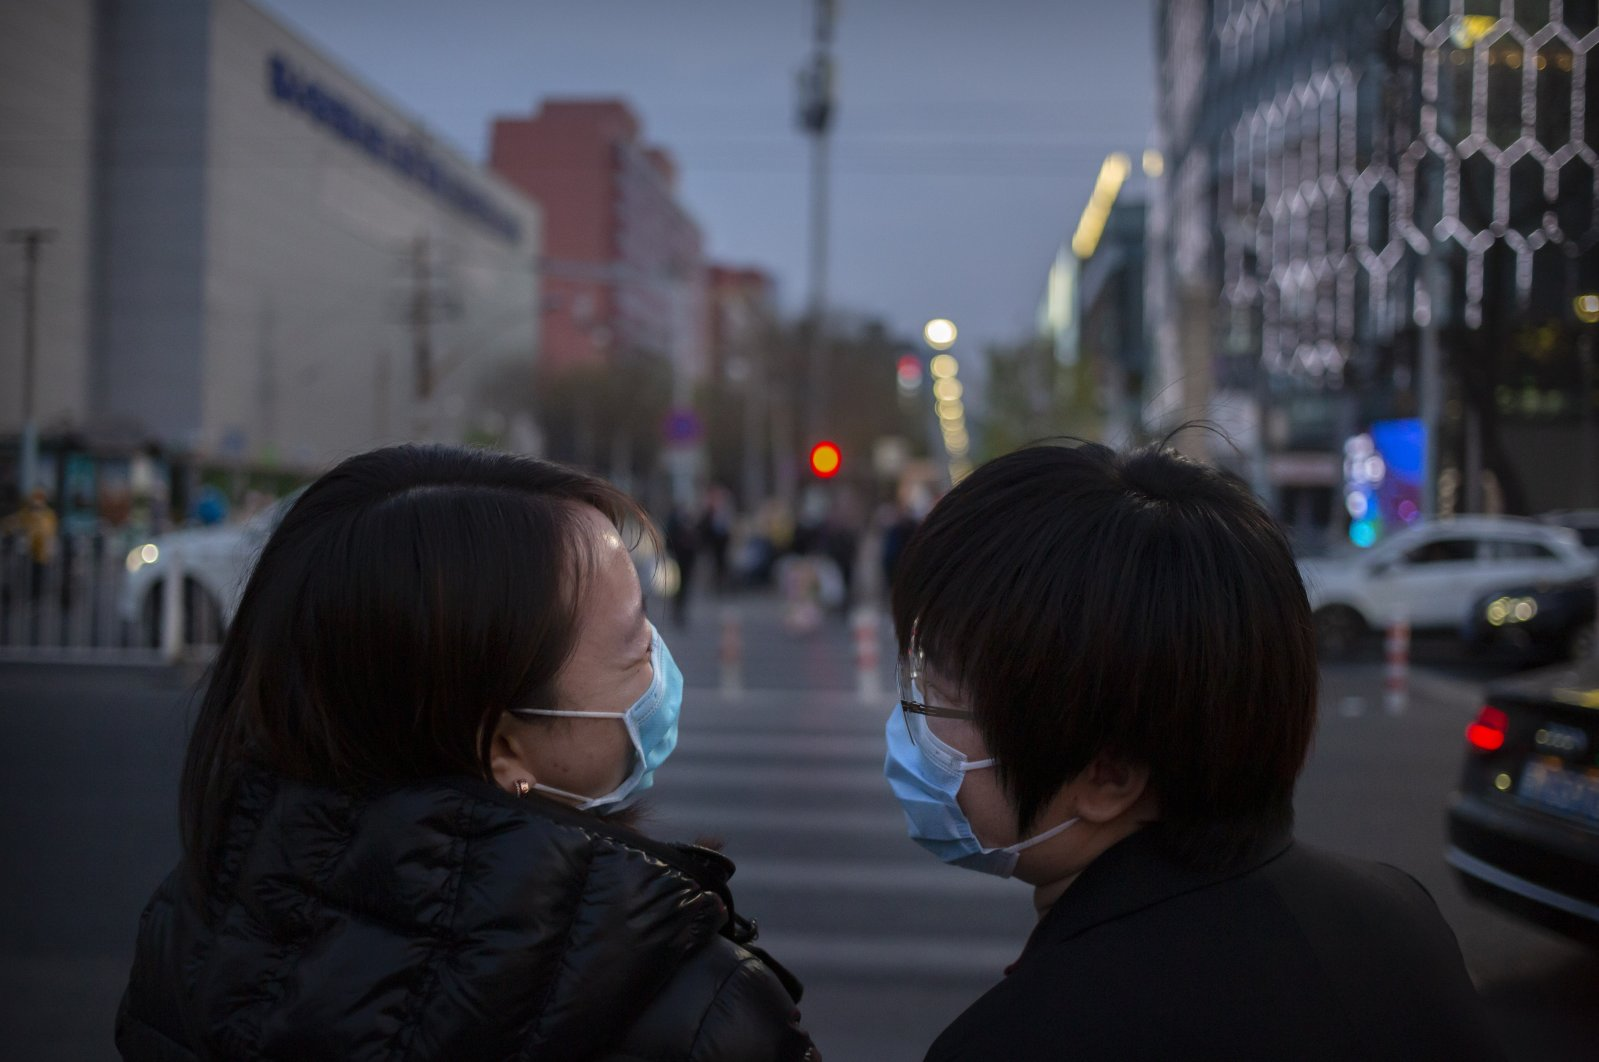 People wearing face masks to help curb the spread of the new coronavirus laugh as they cross an intersection in Beijing, Friday, April 10, 2020. (AP Photo)